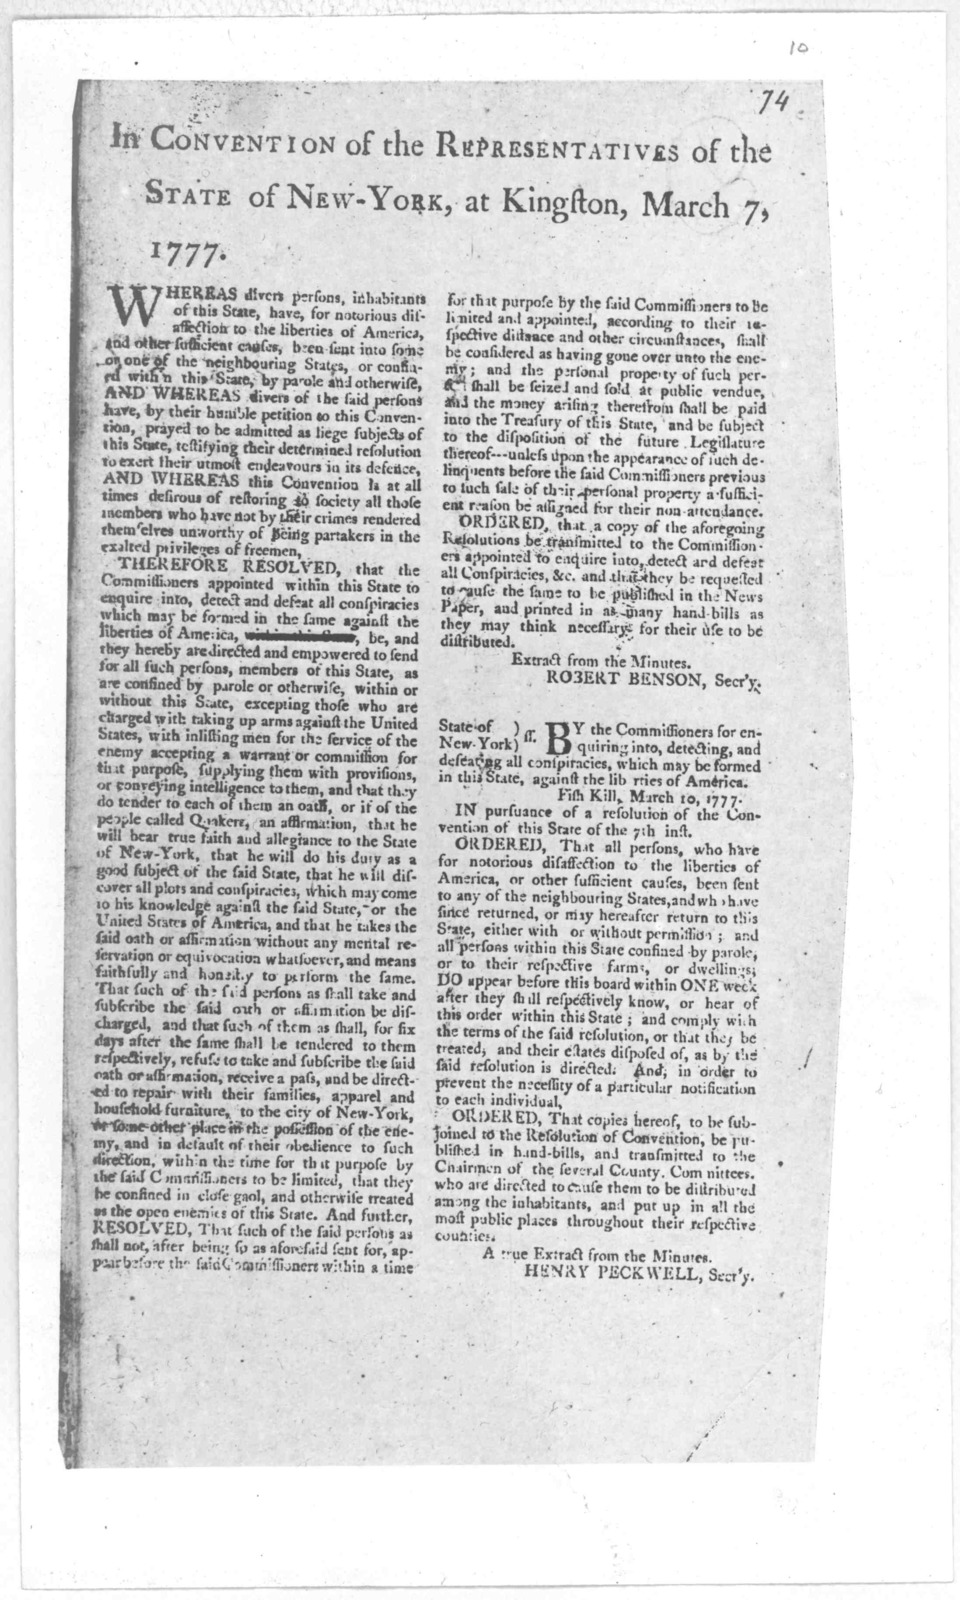 In Convention of the representatives of the state of New York, at Kingston, March 7, 1777. Whereas divers persons, inhabitants of this State have, for notorious disaffection to the liberties of America, and other sufficient causes, been sent int